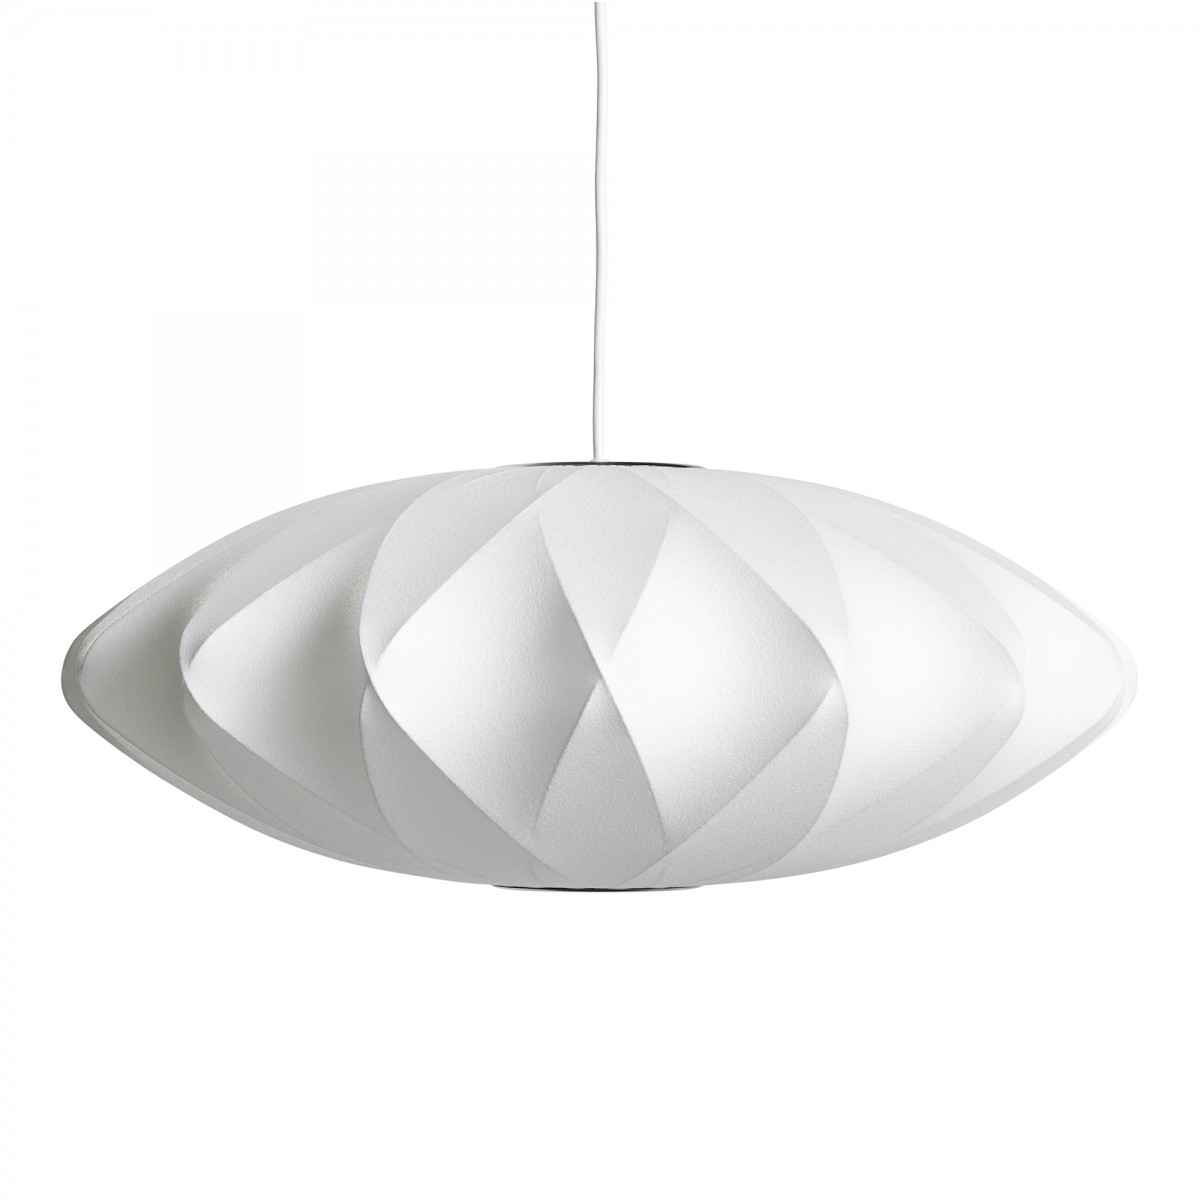 Crisscross Bubble Pendant Light M Designed By Nelson Saucer Hay